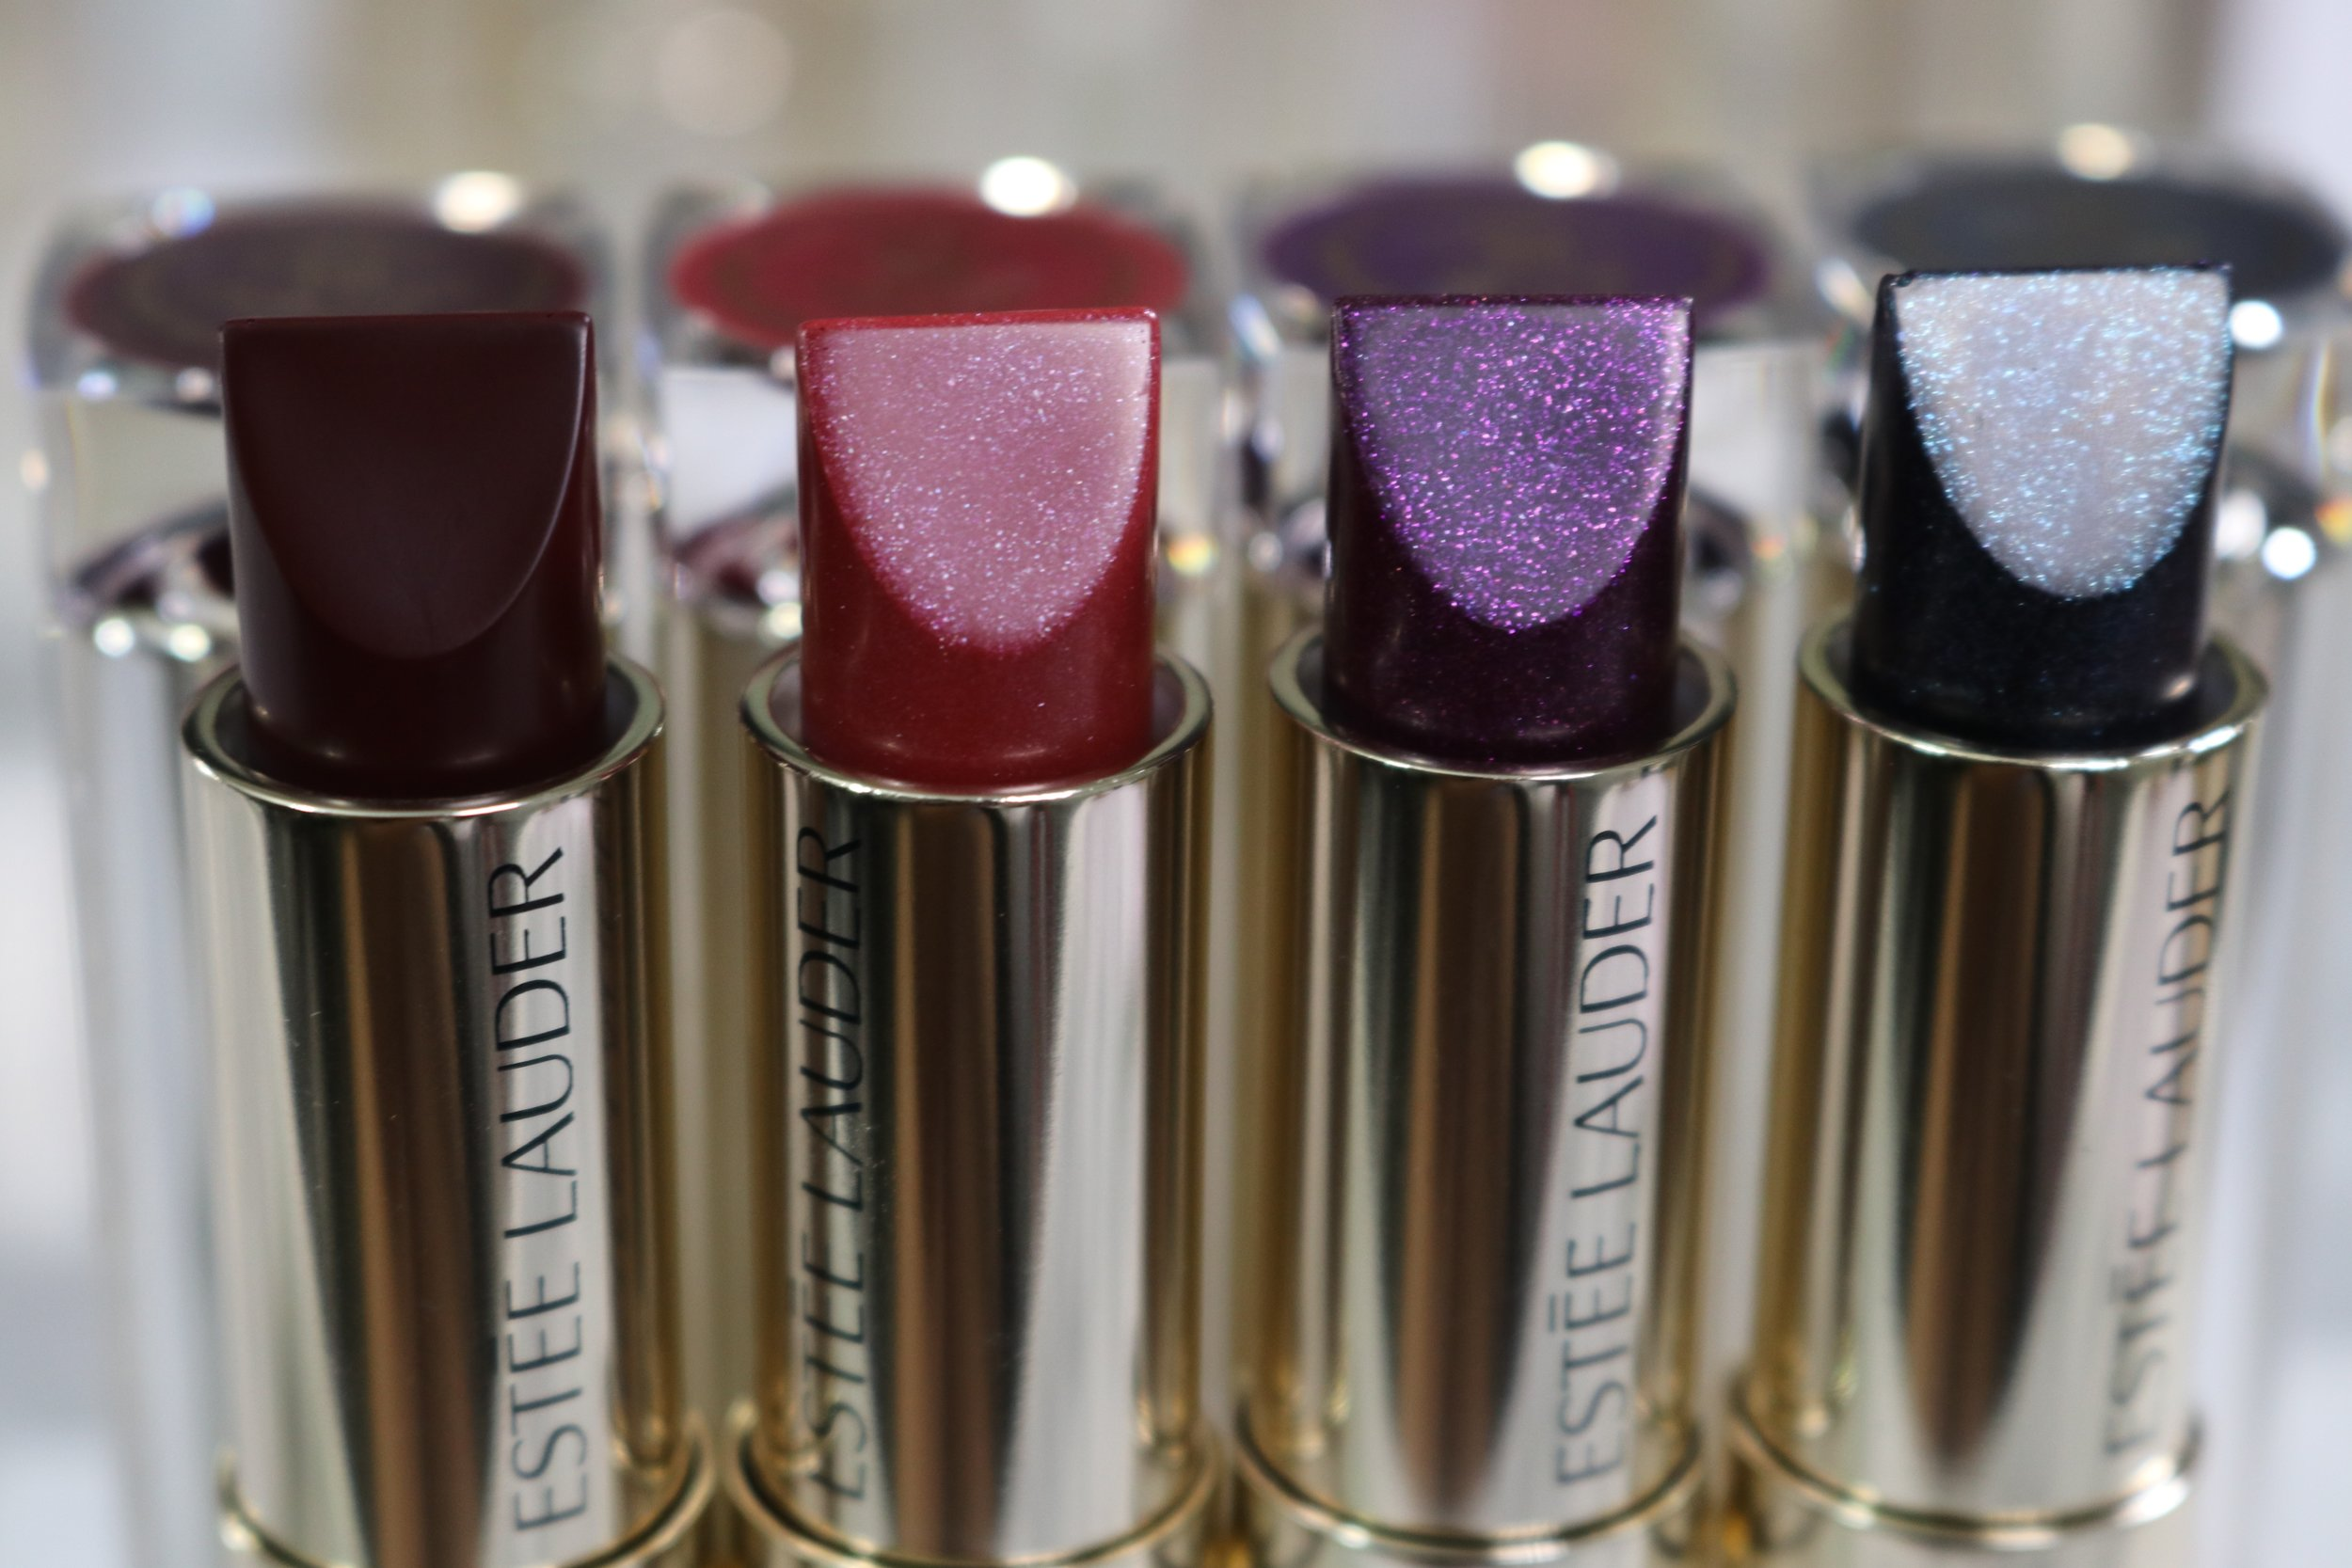 Swatches L to R:450 Orchid Infinity (creme), 460 Ripped Raisin (shimmer pearl), 480 Nova Noir (cooled chrome),470 Moon Rock (cooled chrome)